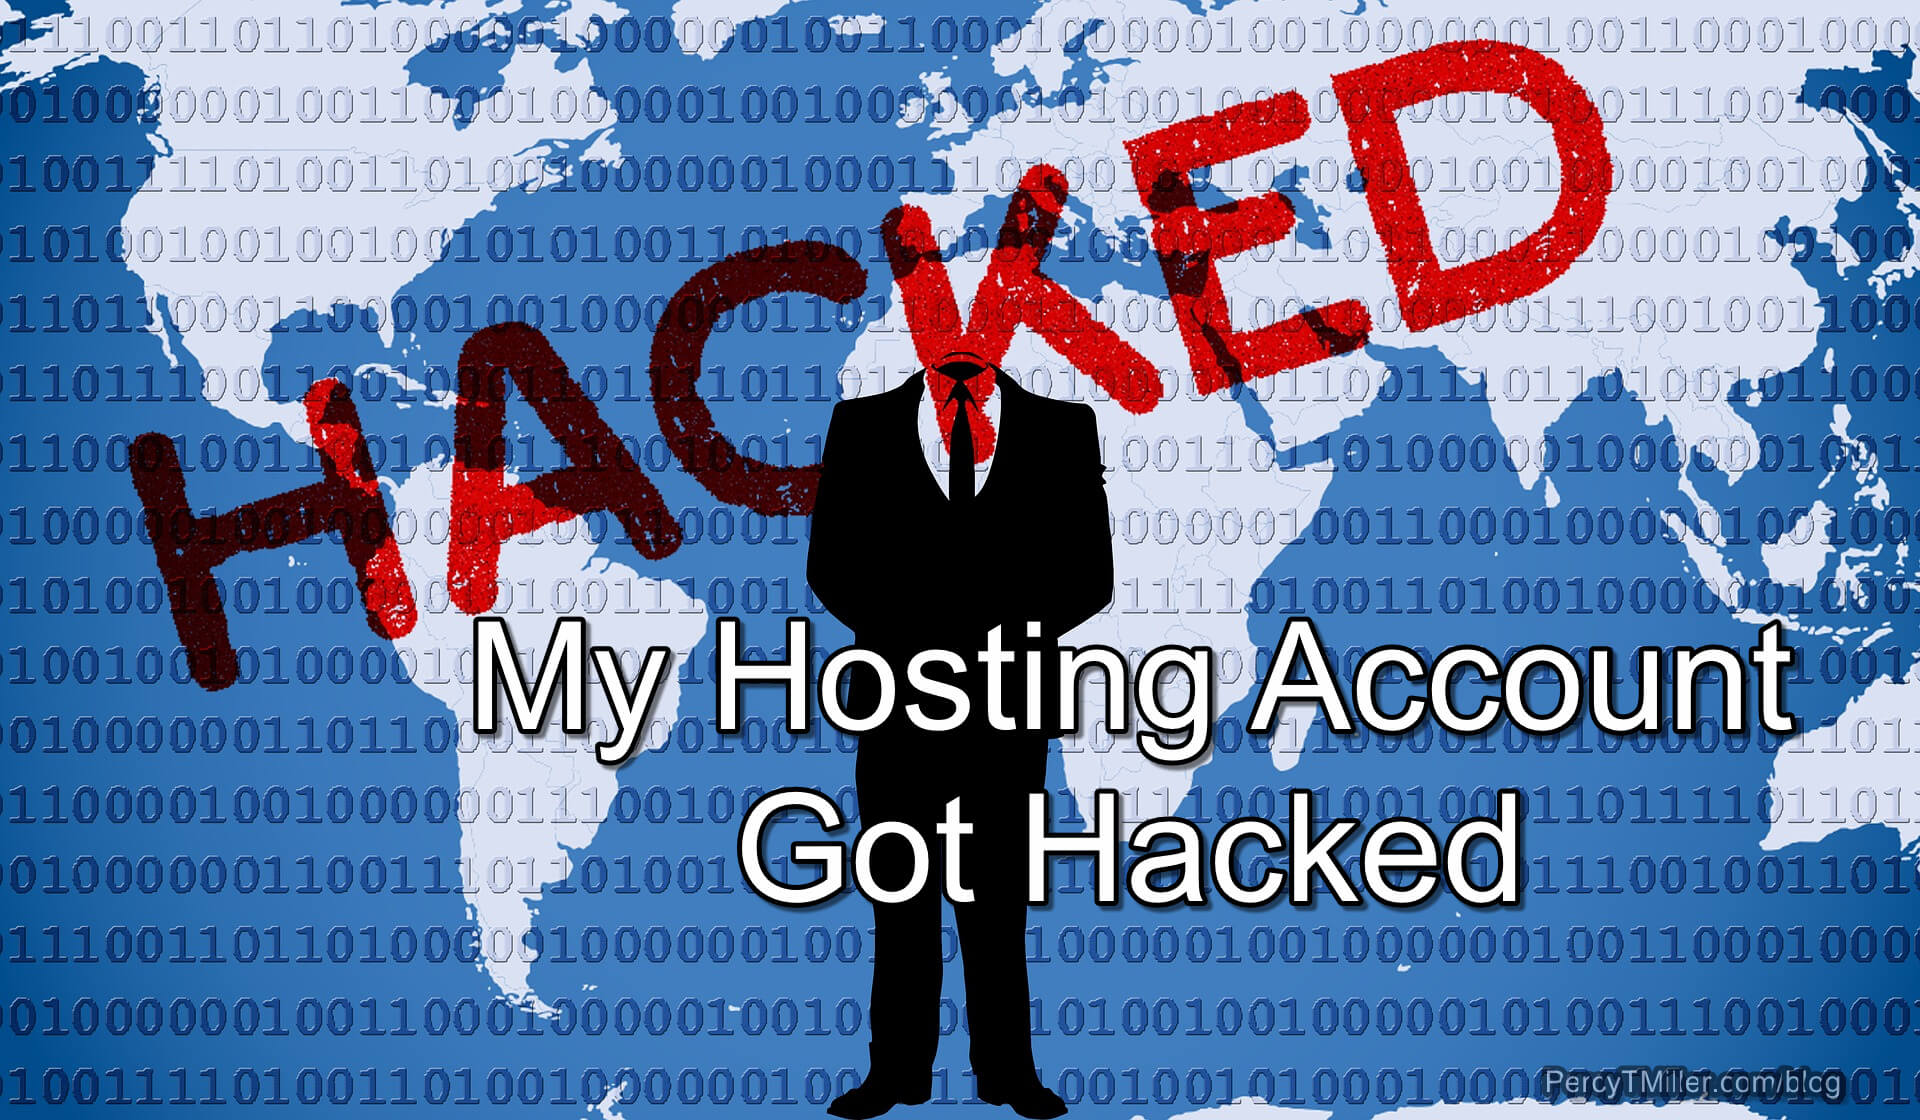 My Hosting Account Got Hacked